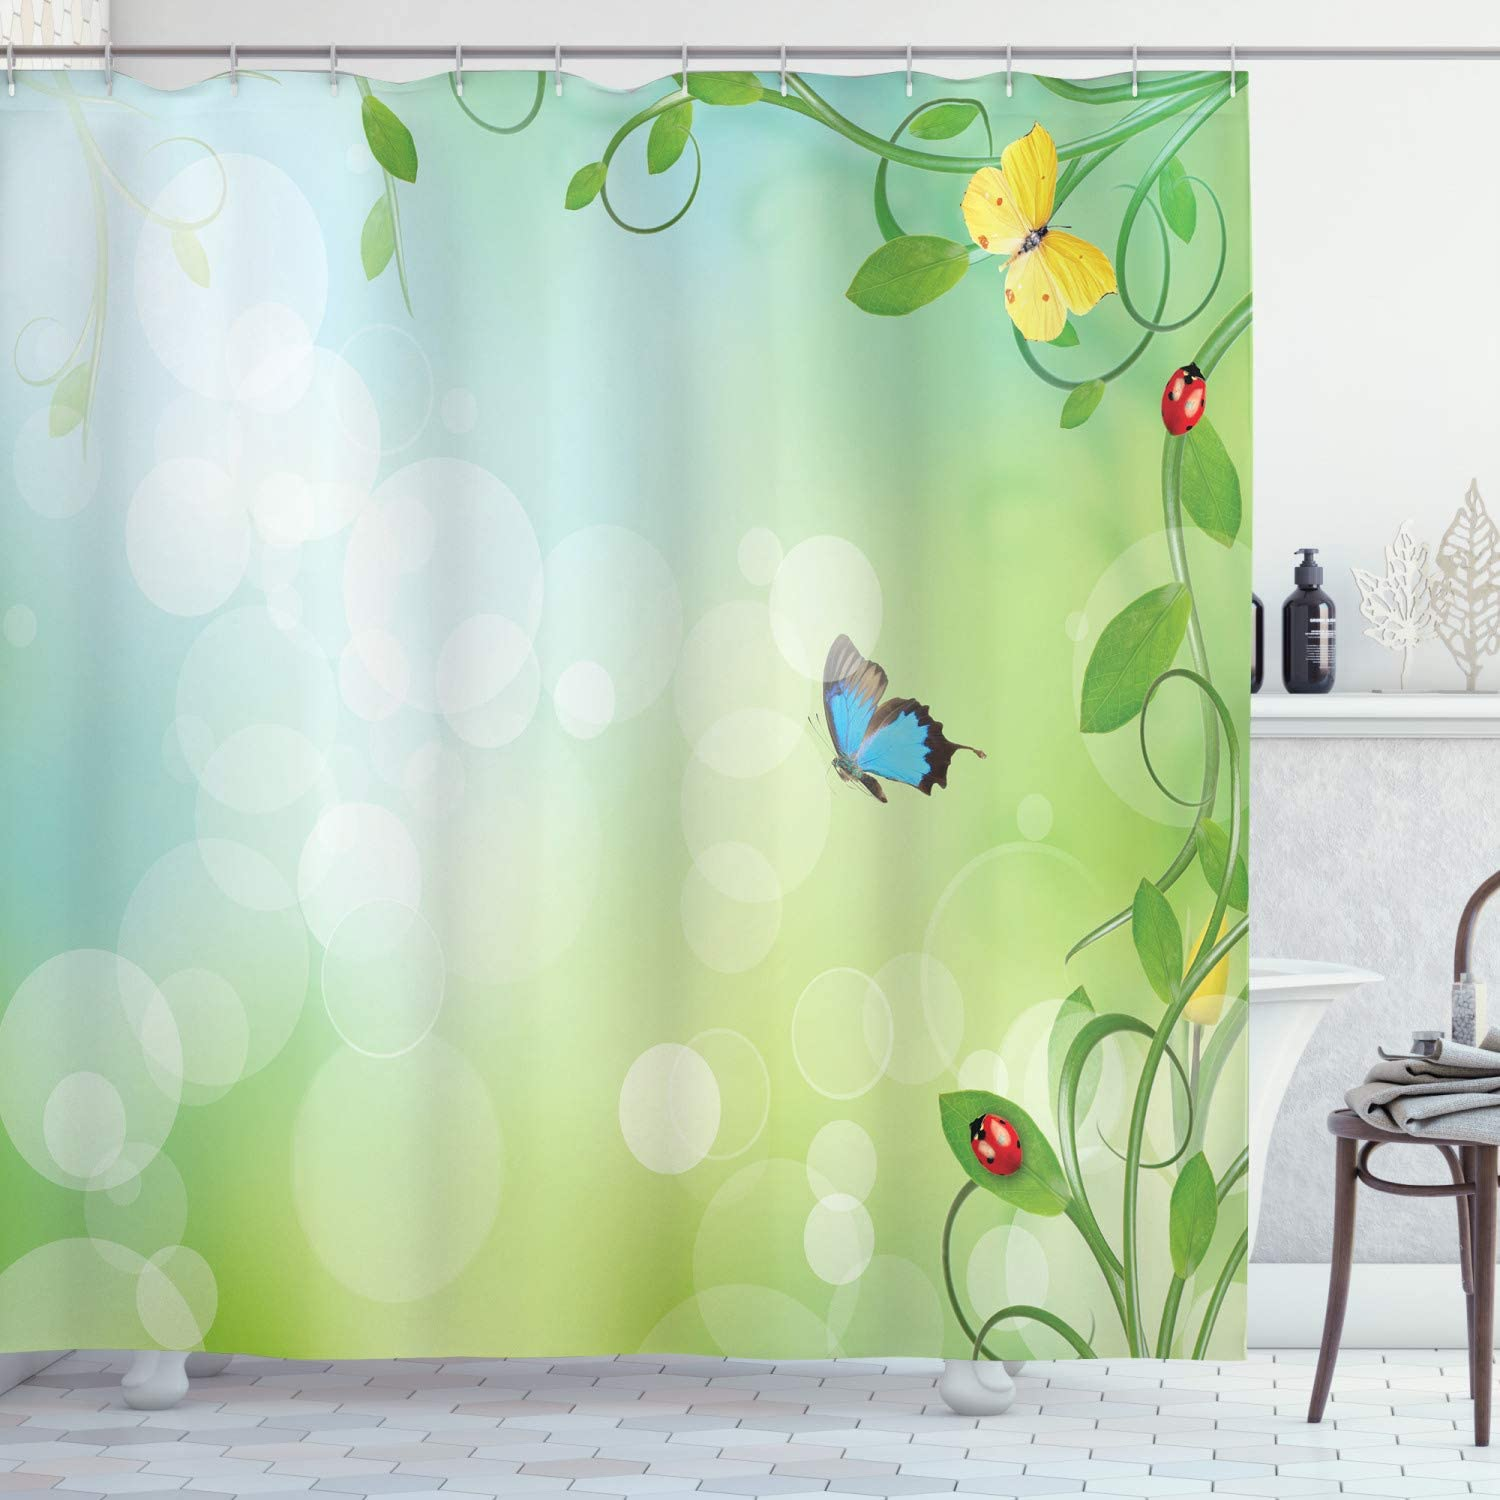 Ambesonne Ladybugs Shower Curtain, Spring Theme with Flowers Ladybugs and Butterflies Transformation Morph Print, Cloth Fabric Bathroom Decor Set with Hooks, 84